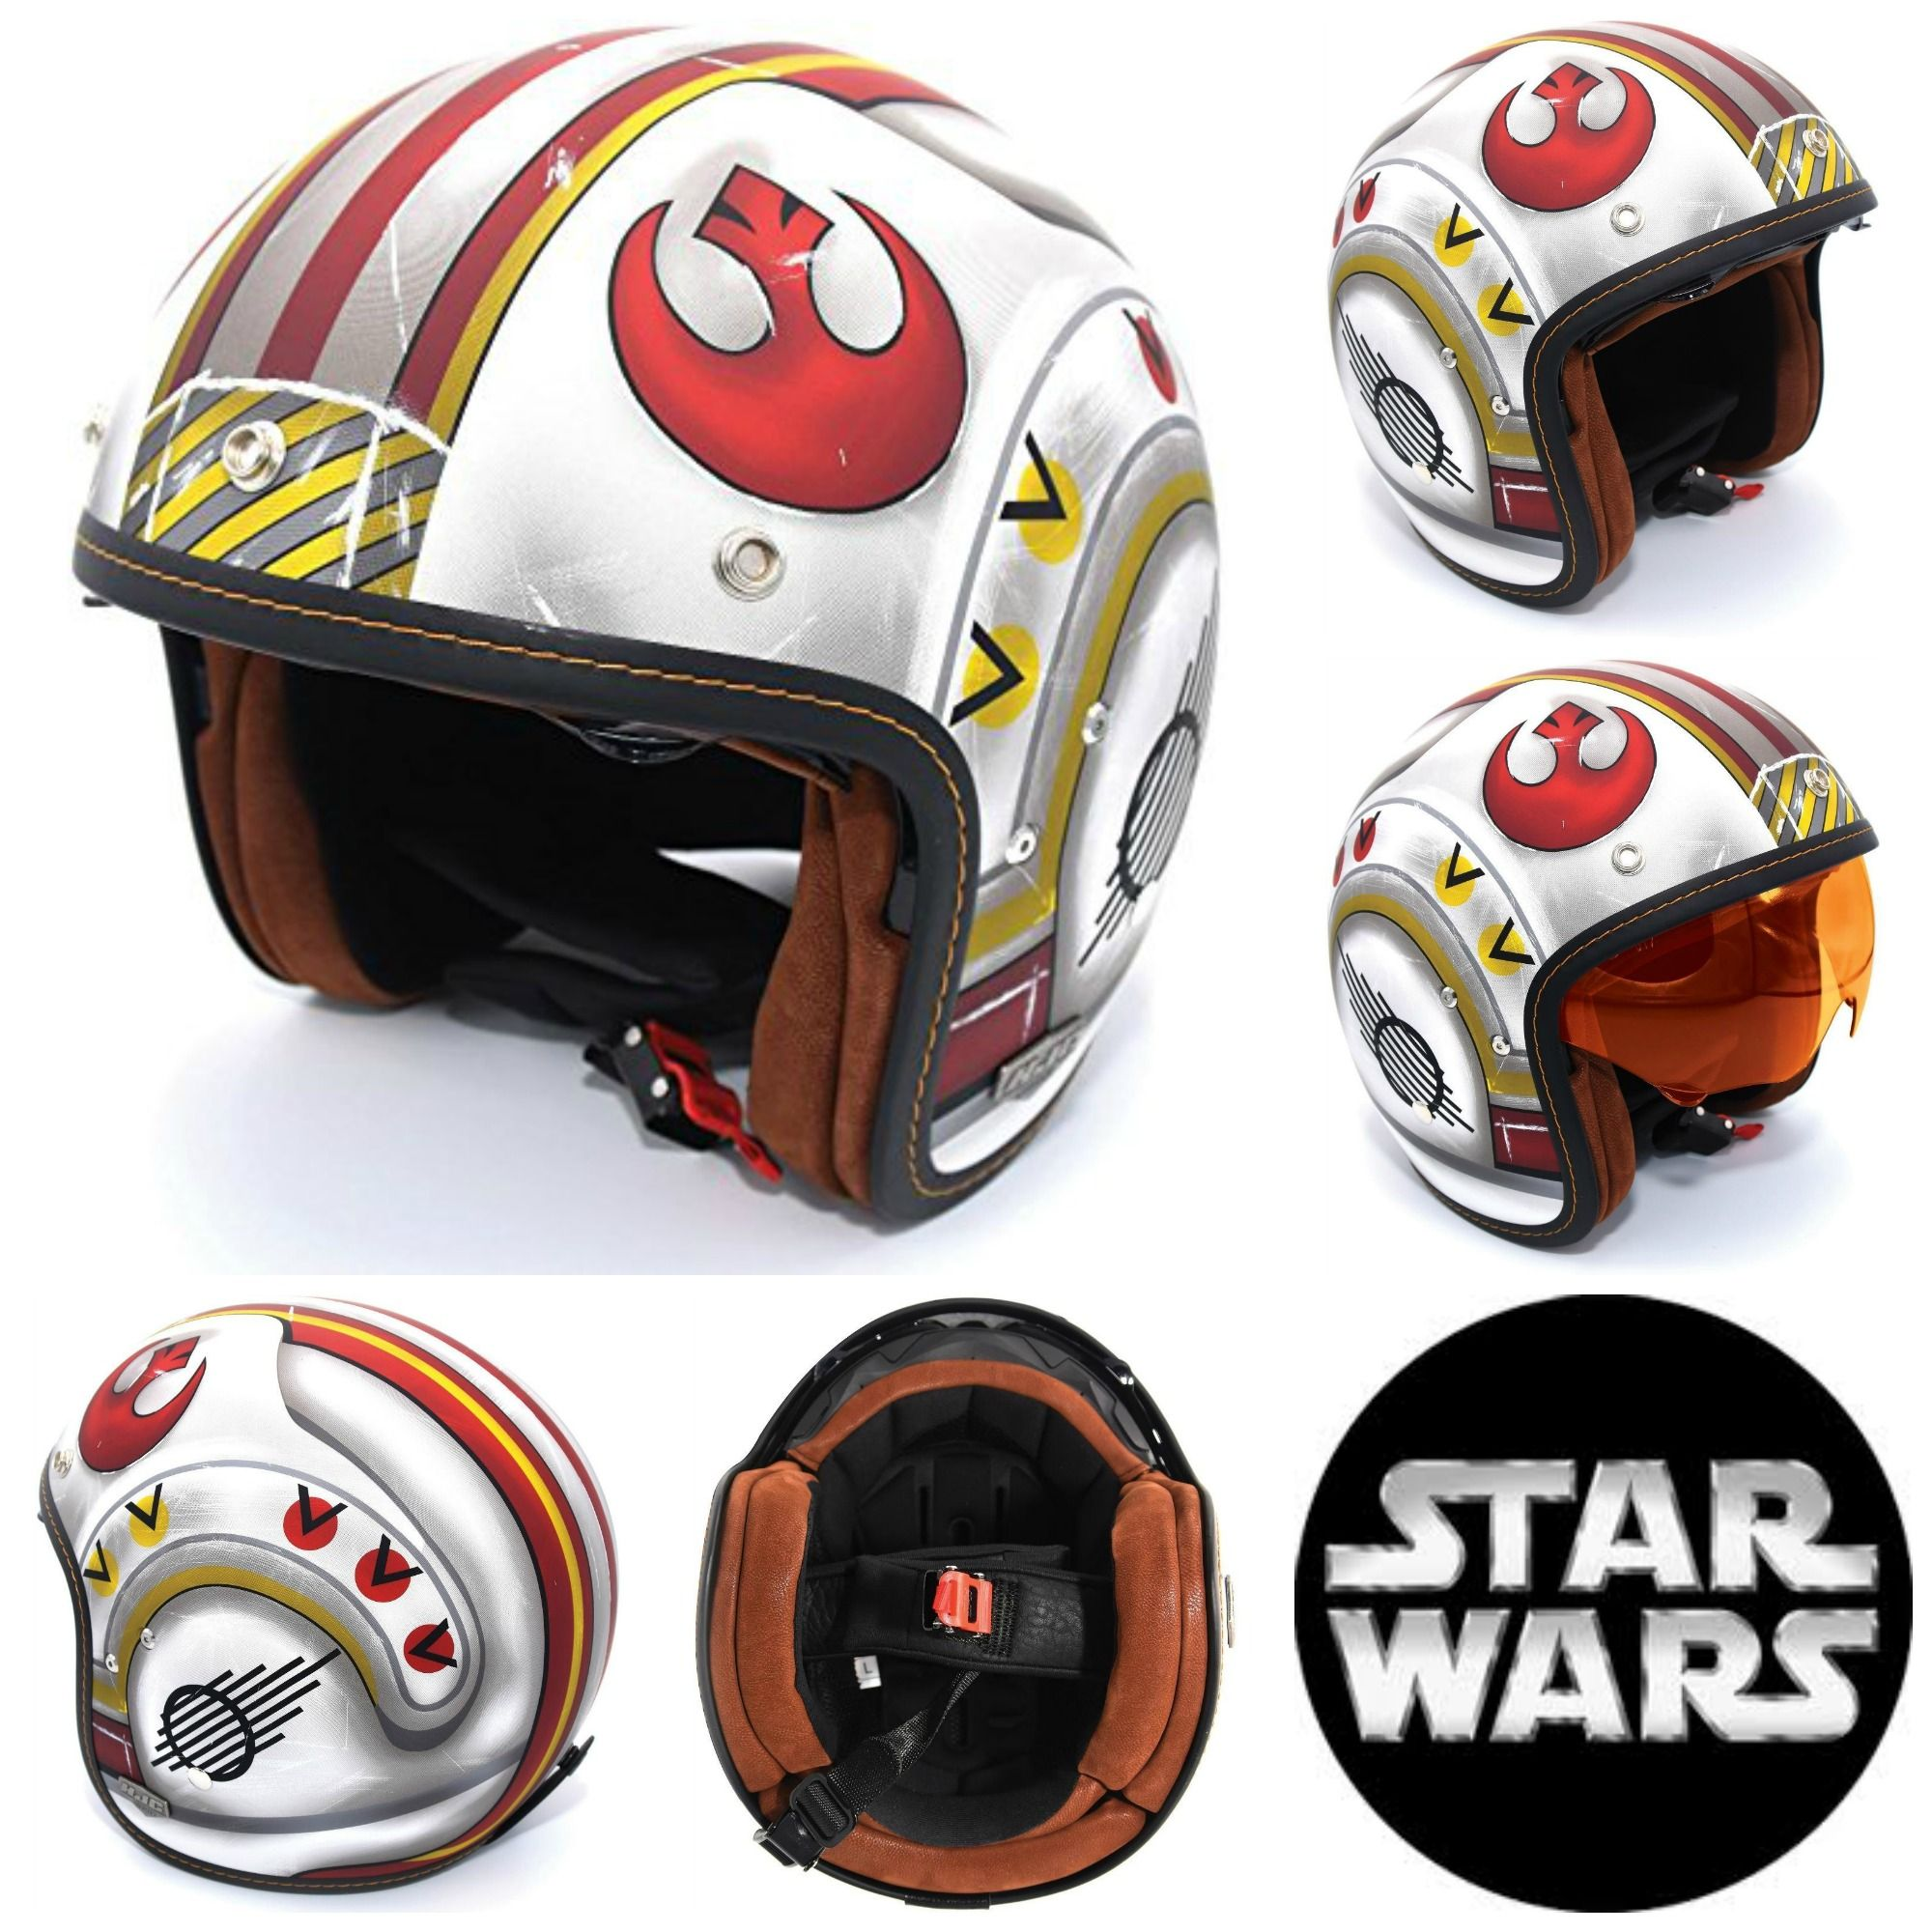 Star Wars Motorcycle Helmets I Am One With The Force Helmet Motorcycle Helmets Old School Bike